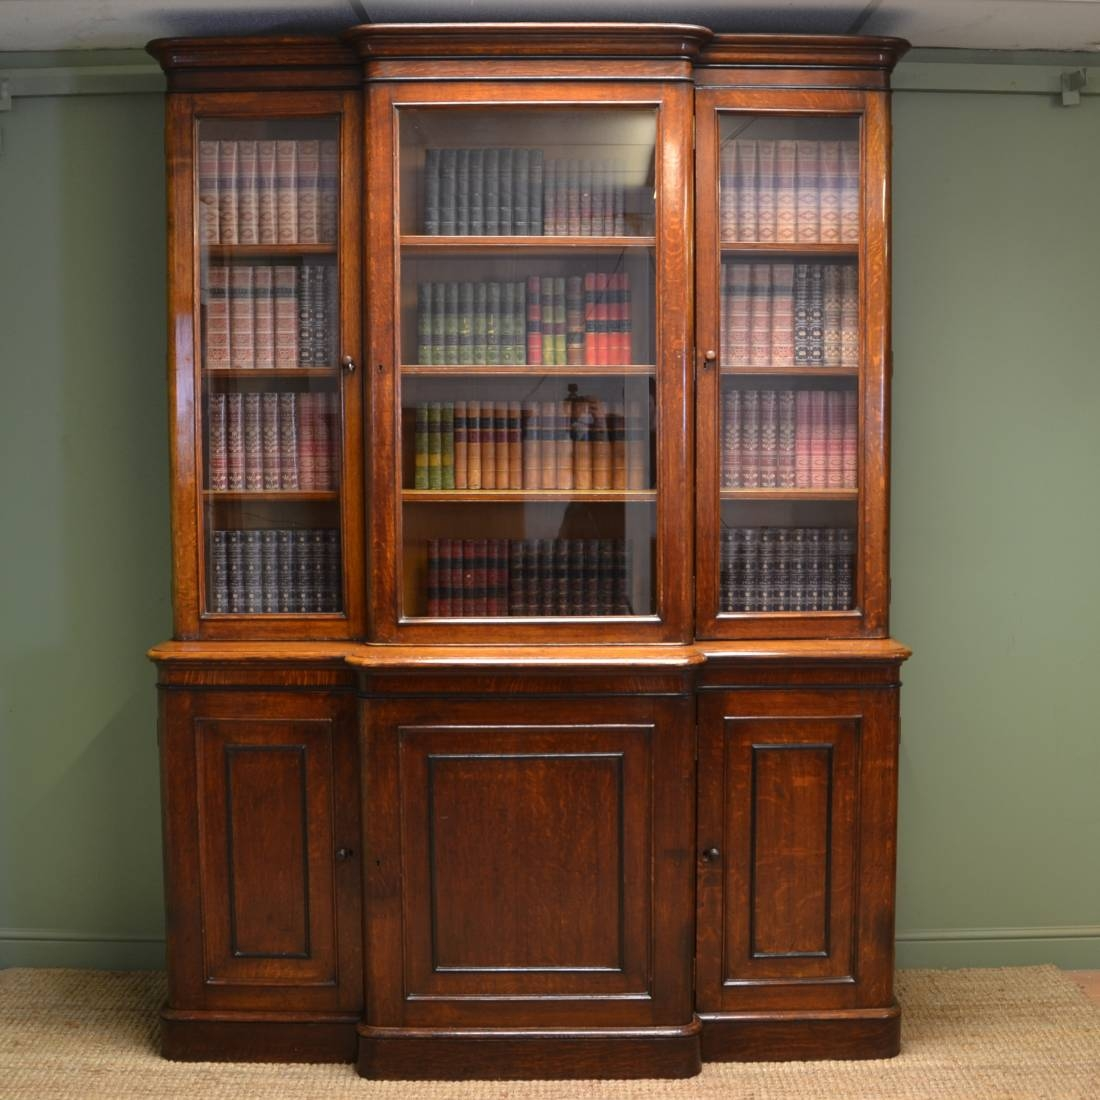 Popular Photo of Oak Library Bookcase